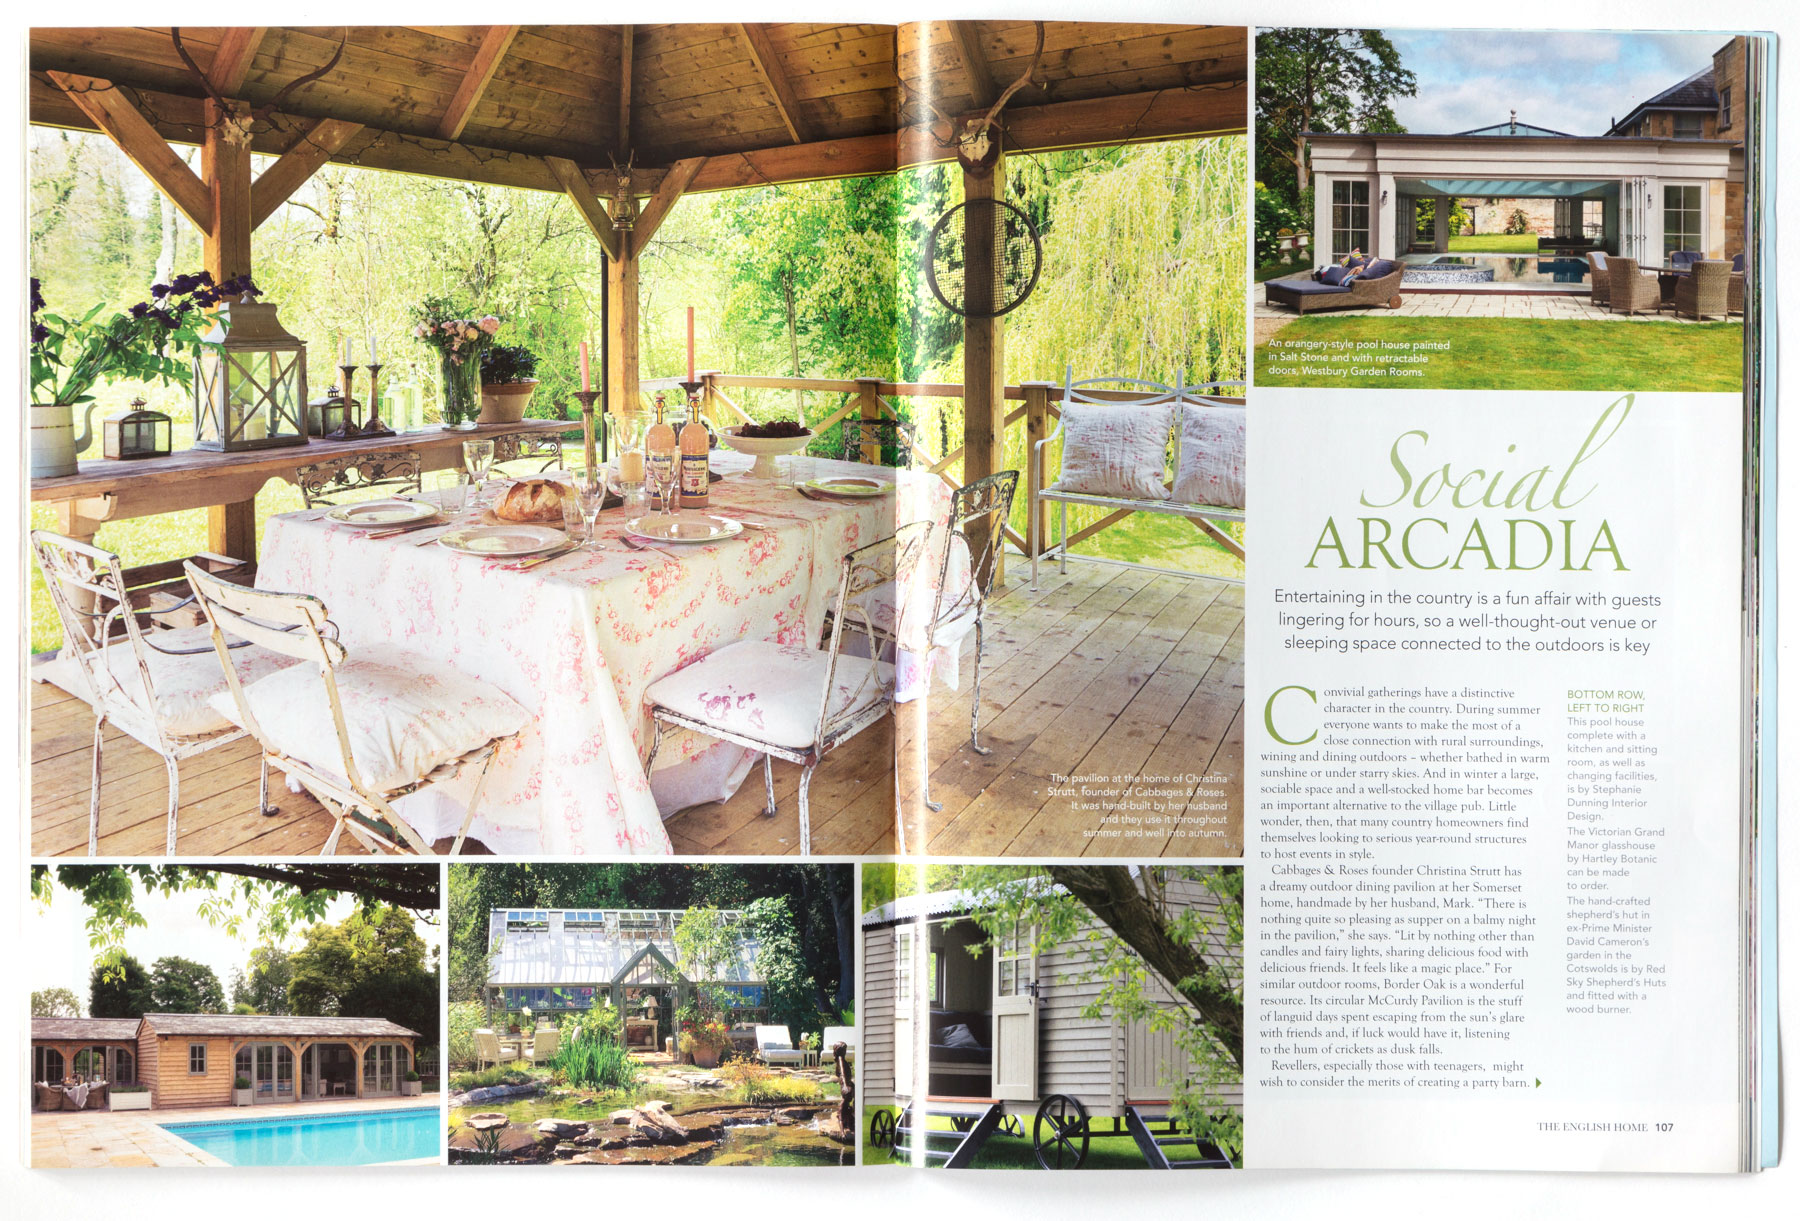 THE ENGLISH HOME - AUGUST 2017 2